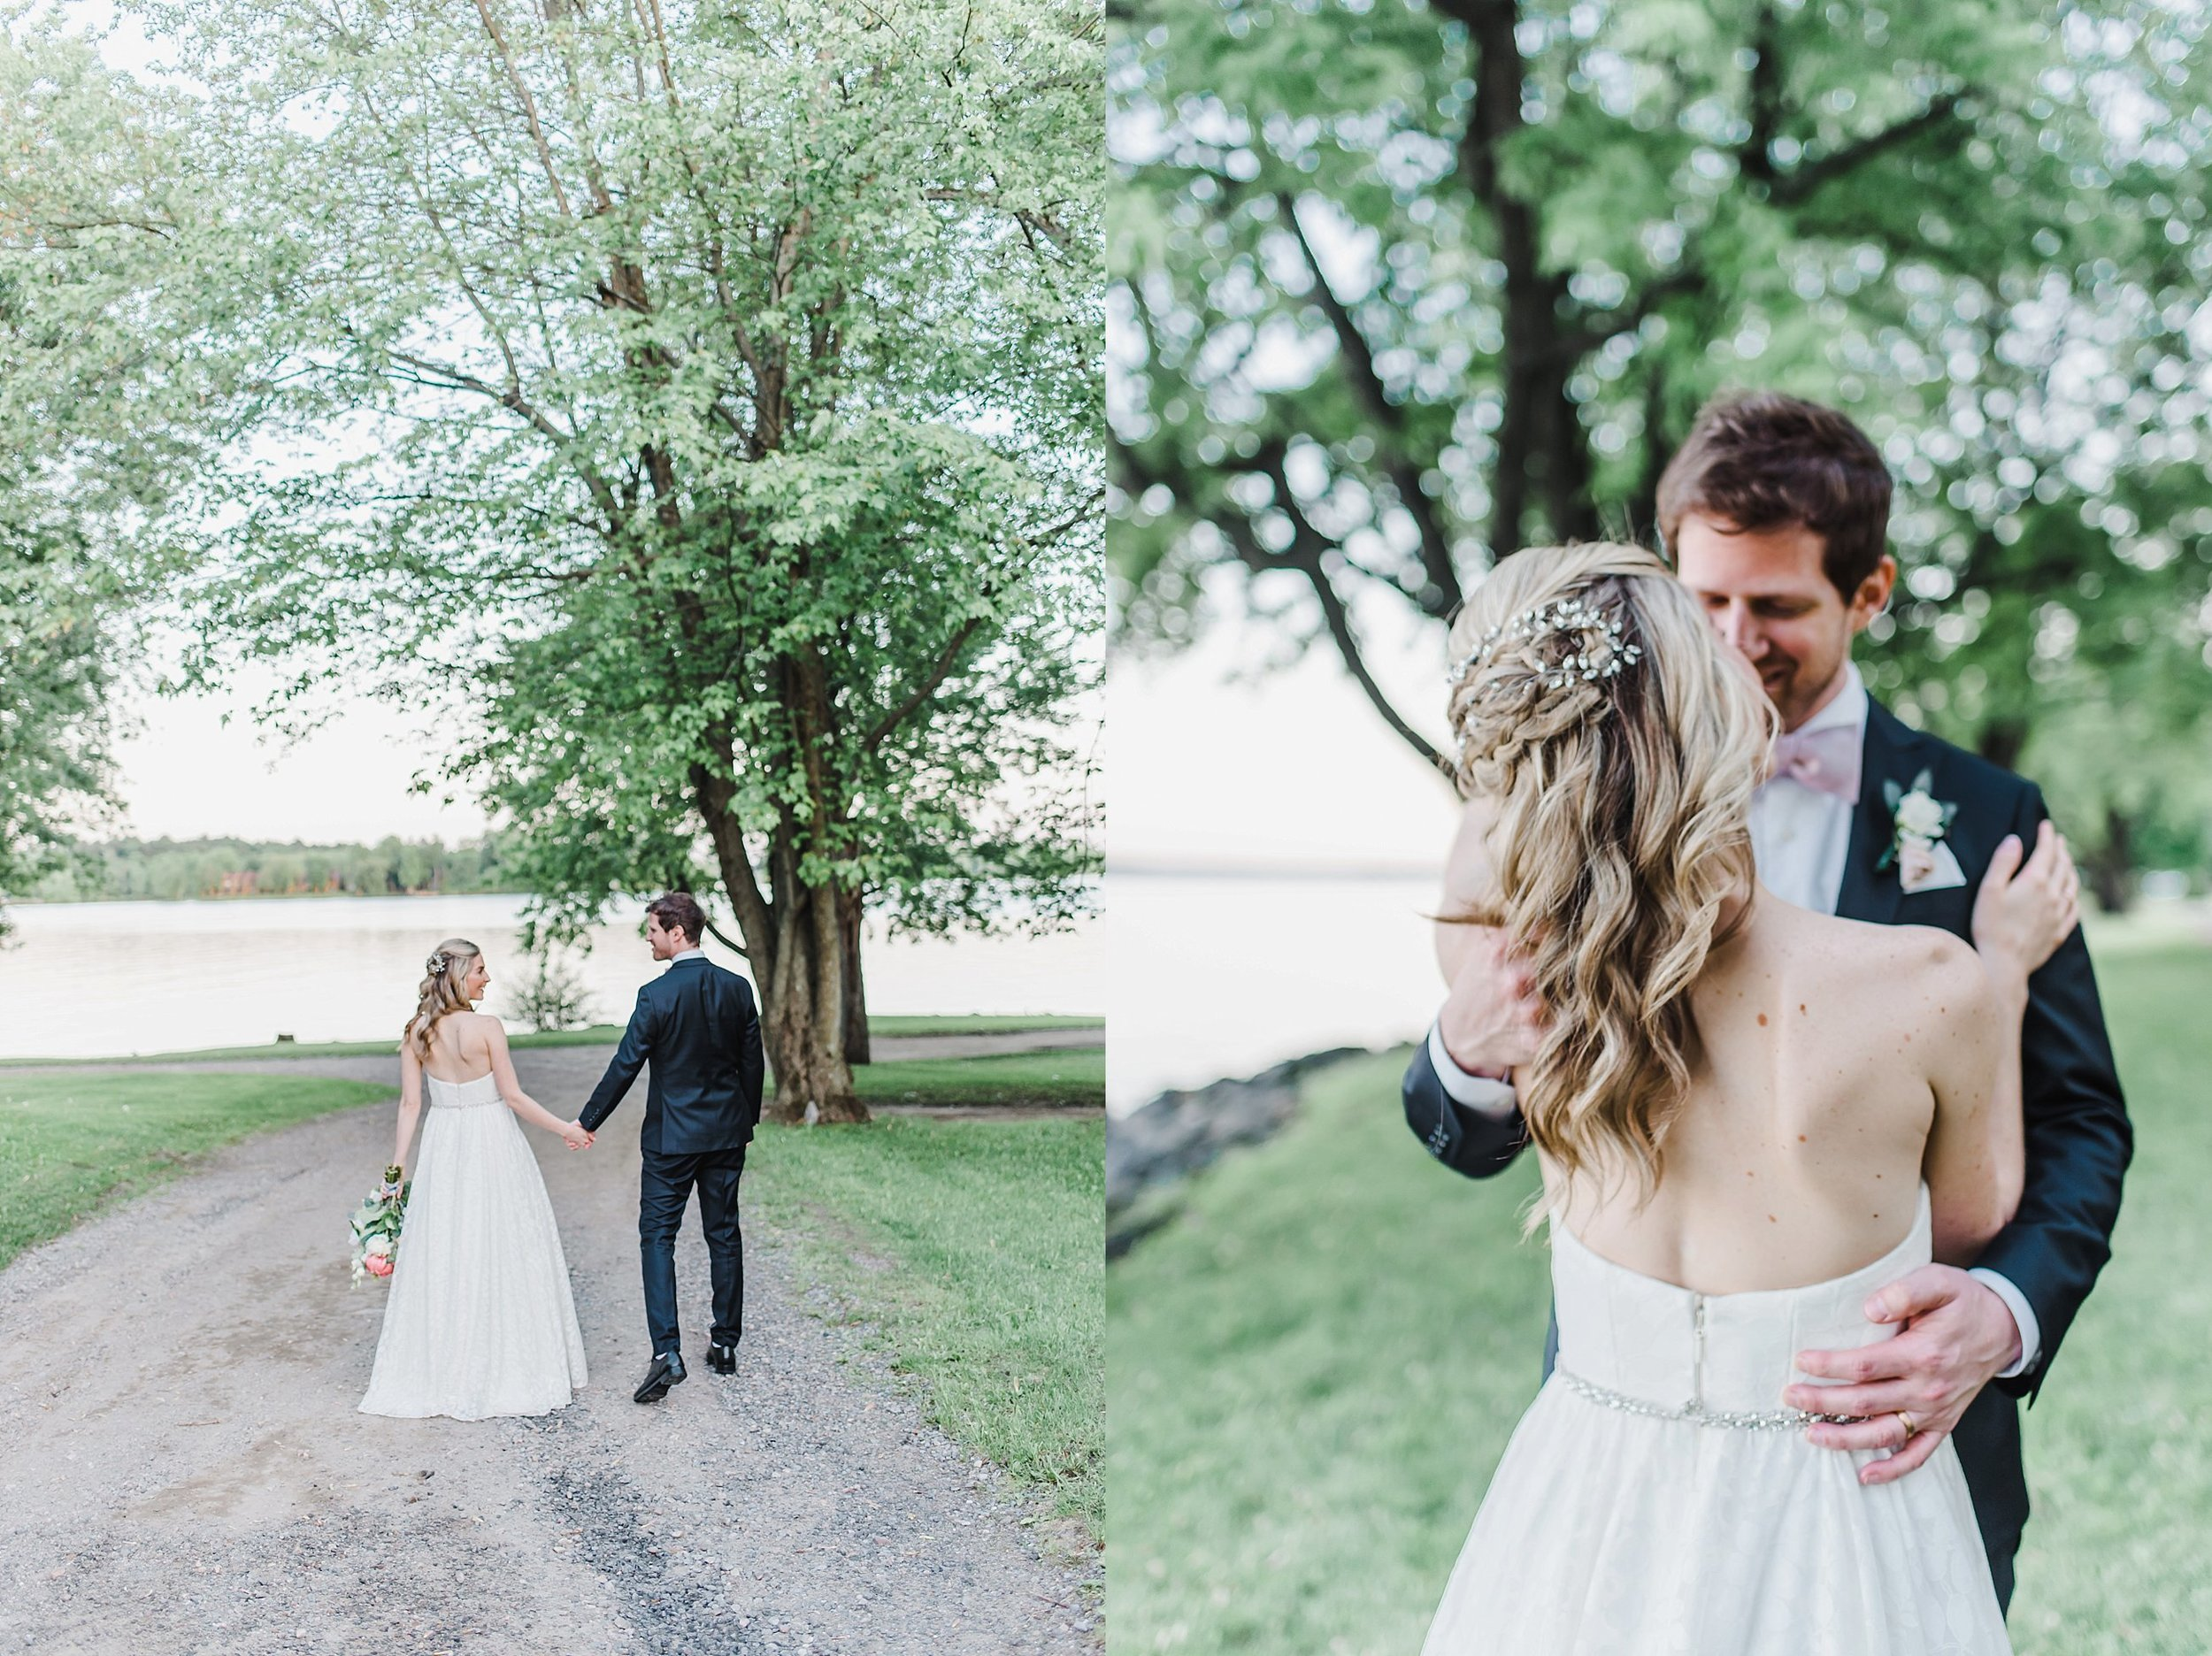 light airy indie fine art ottawa wedding photographer | Ali and Batoul Photography_0124.jpg